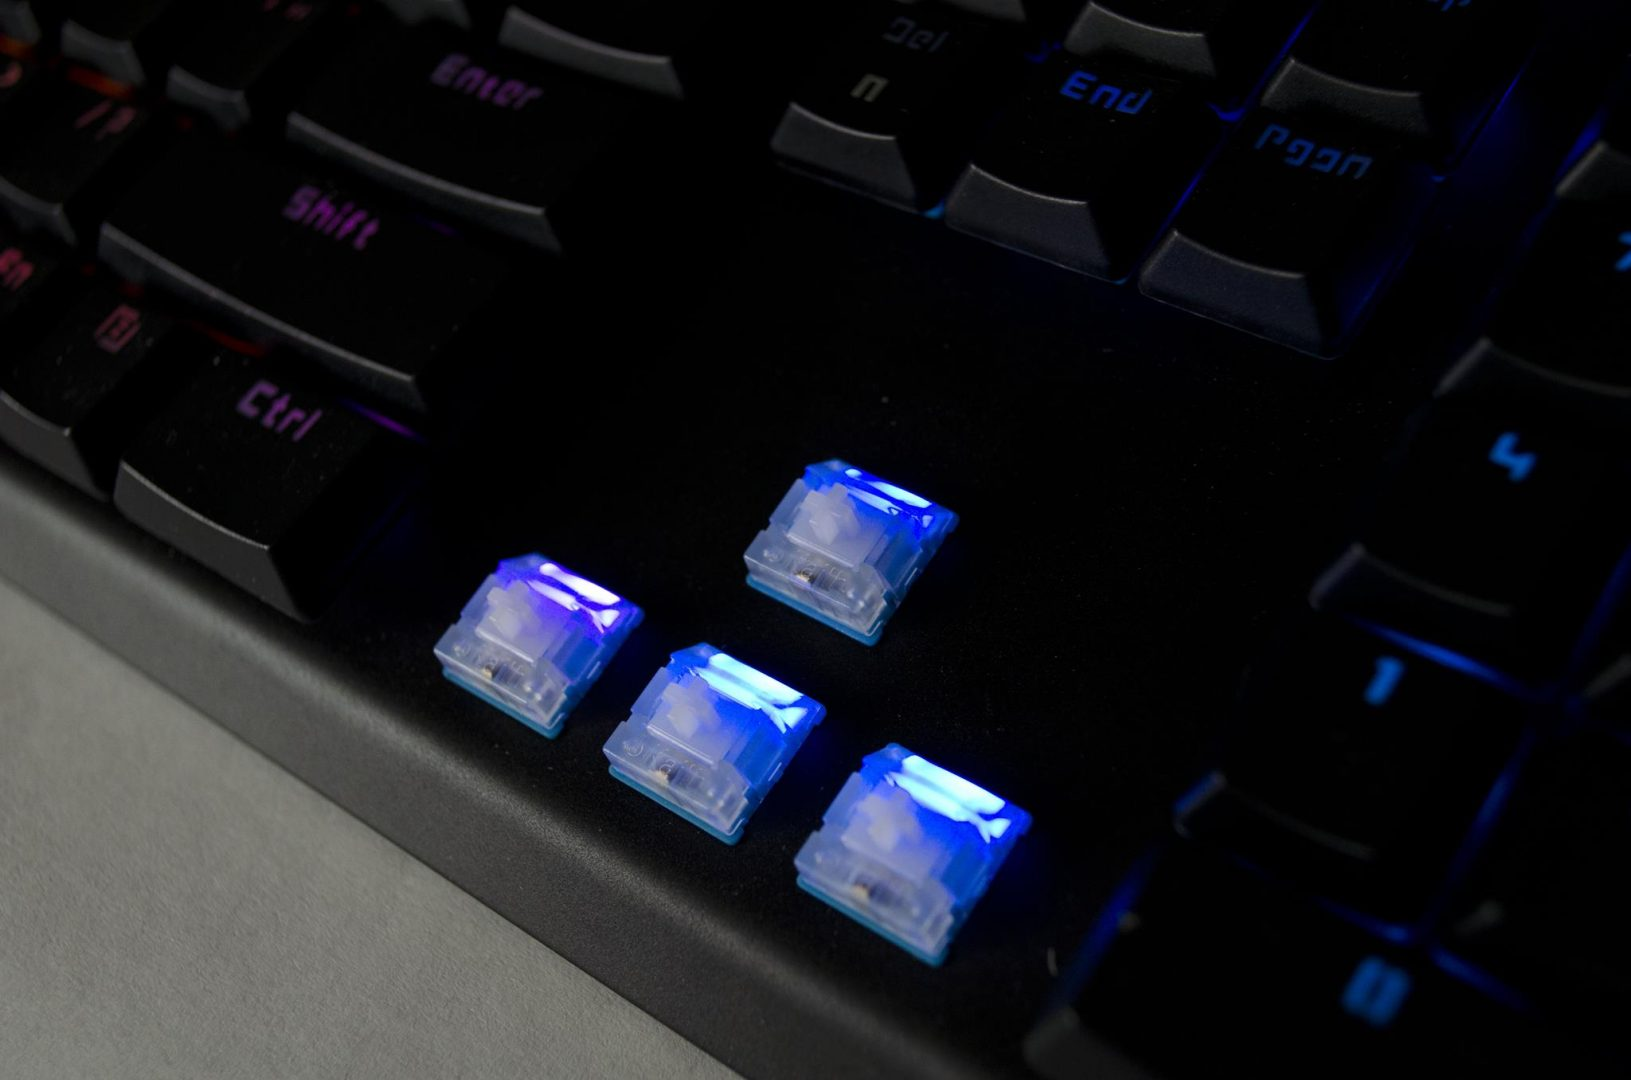 tesoro-gram-spectrum-rgm-gaming-mechanical-keyboard-review_1